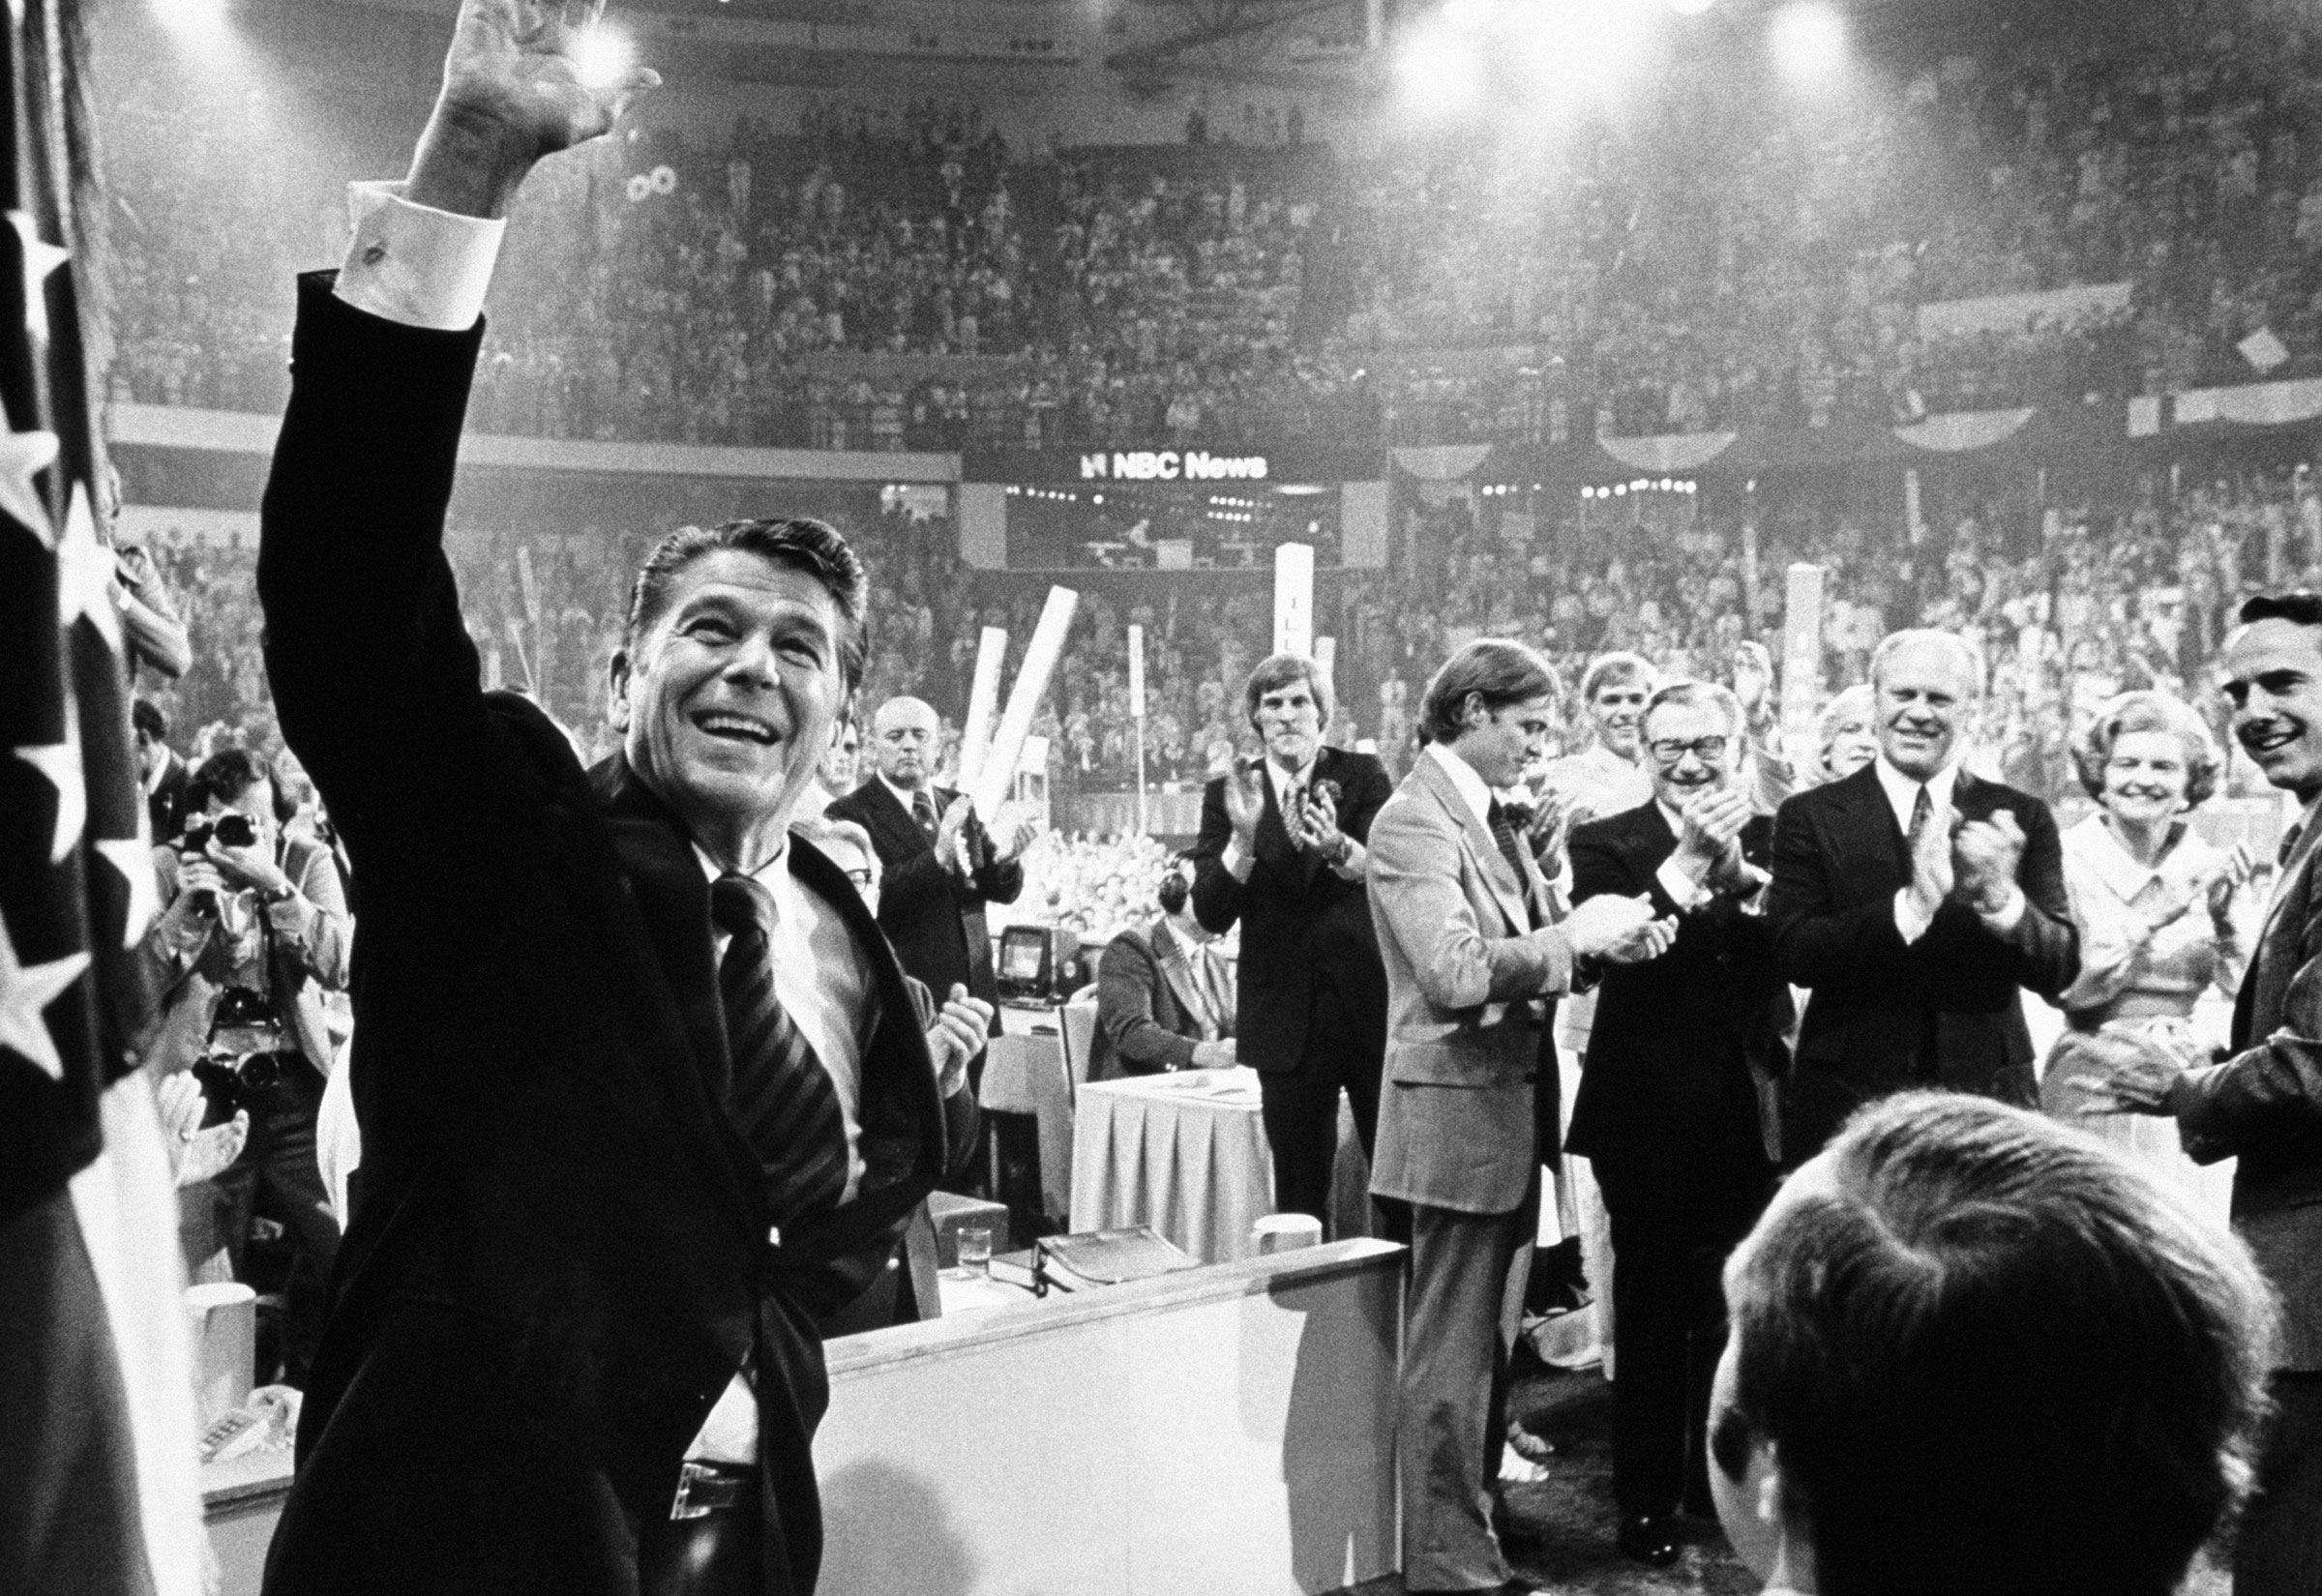 Ronald Reagan waves to the crowd on the final night of the Republican National Convention in Kansas City on Aug. 19, 1976.